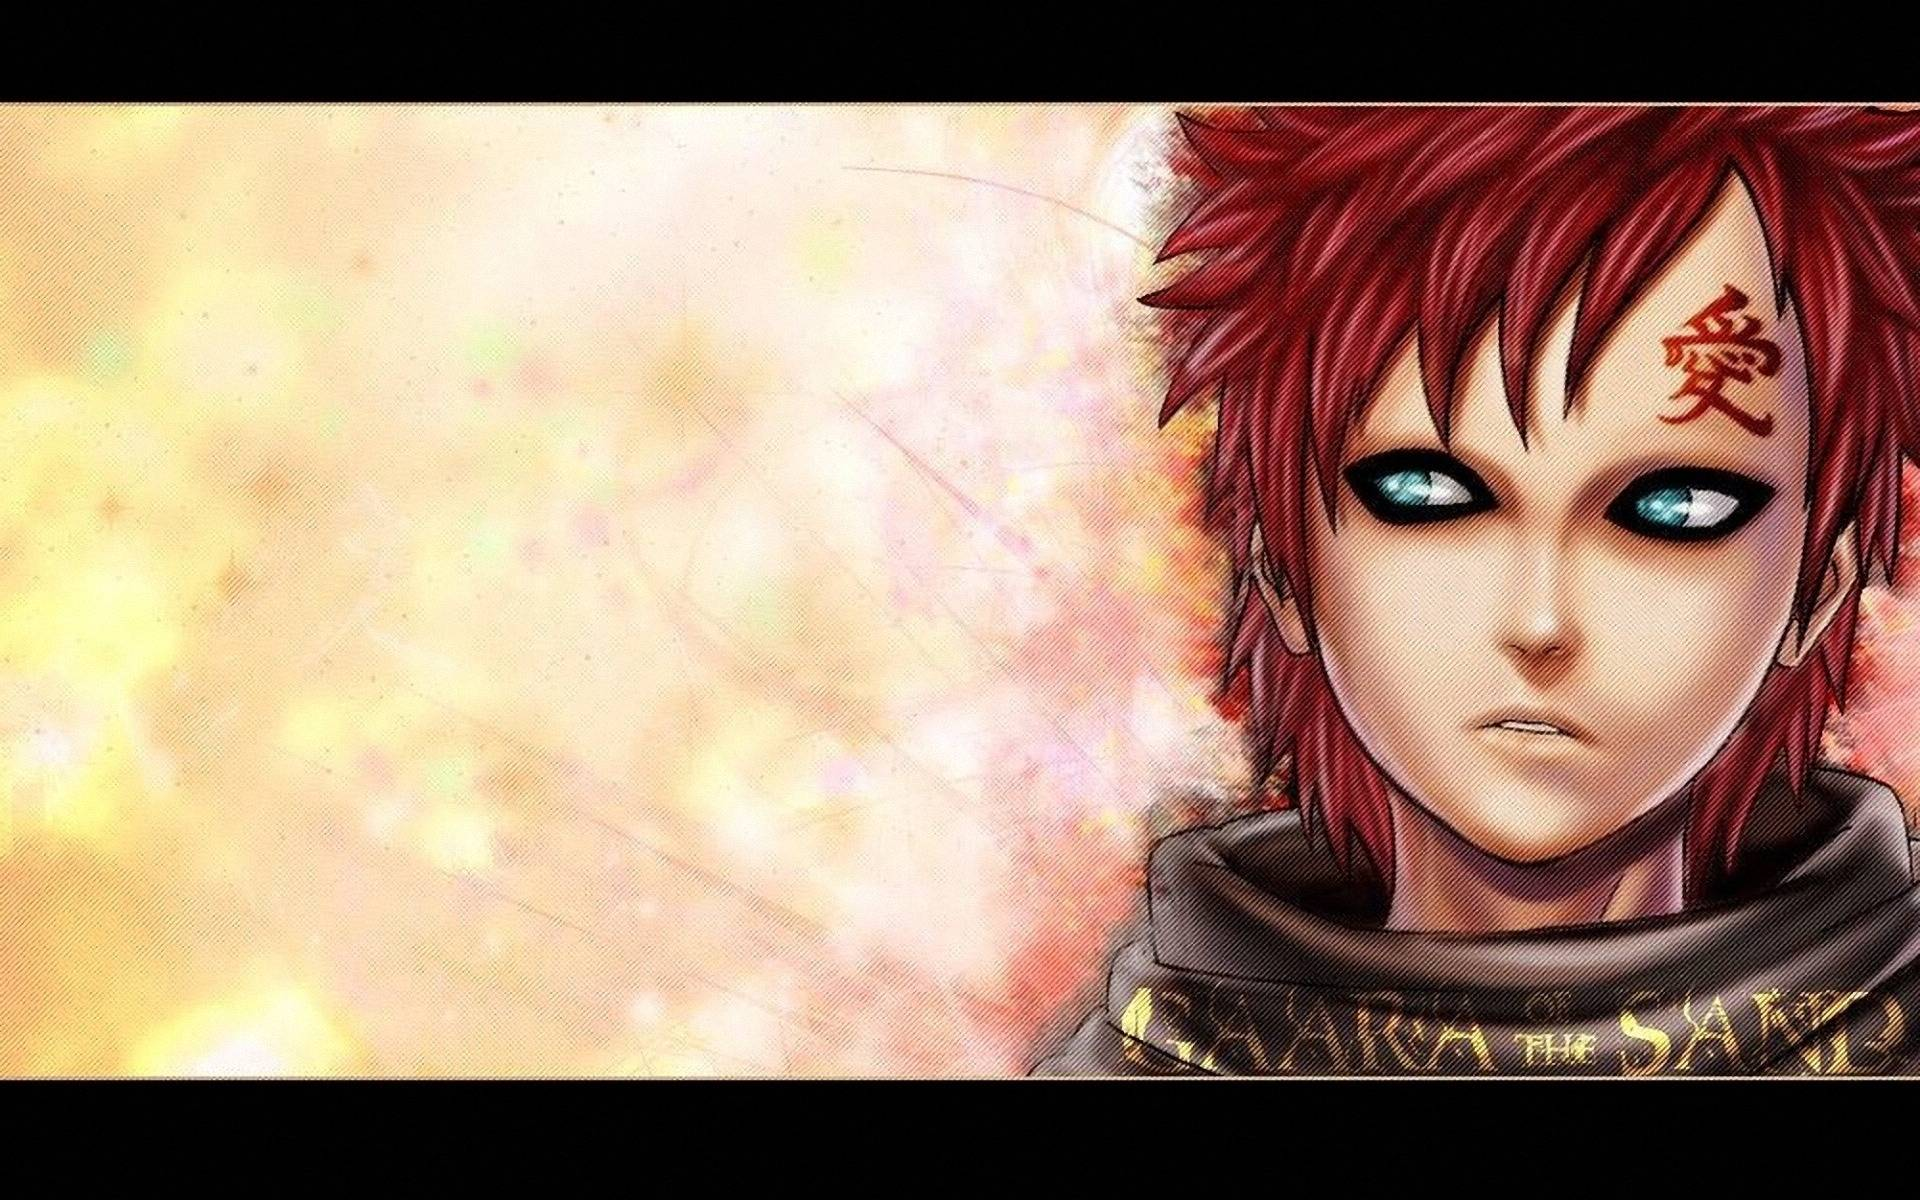 Gaara wallpaper 233245 1920x1200